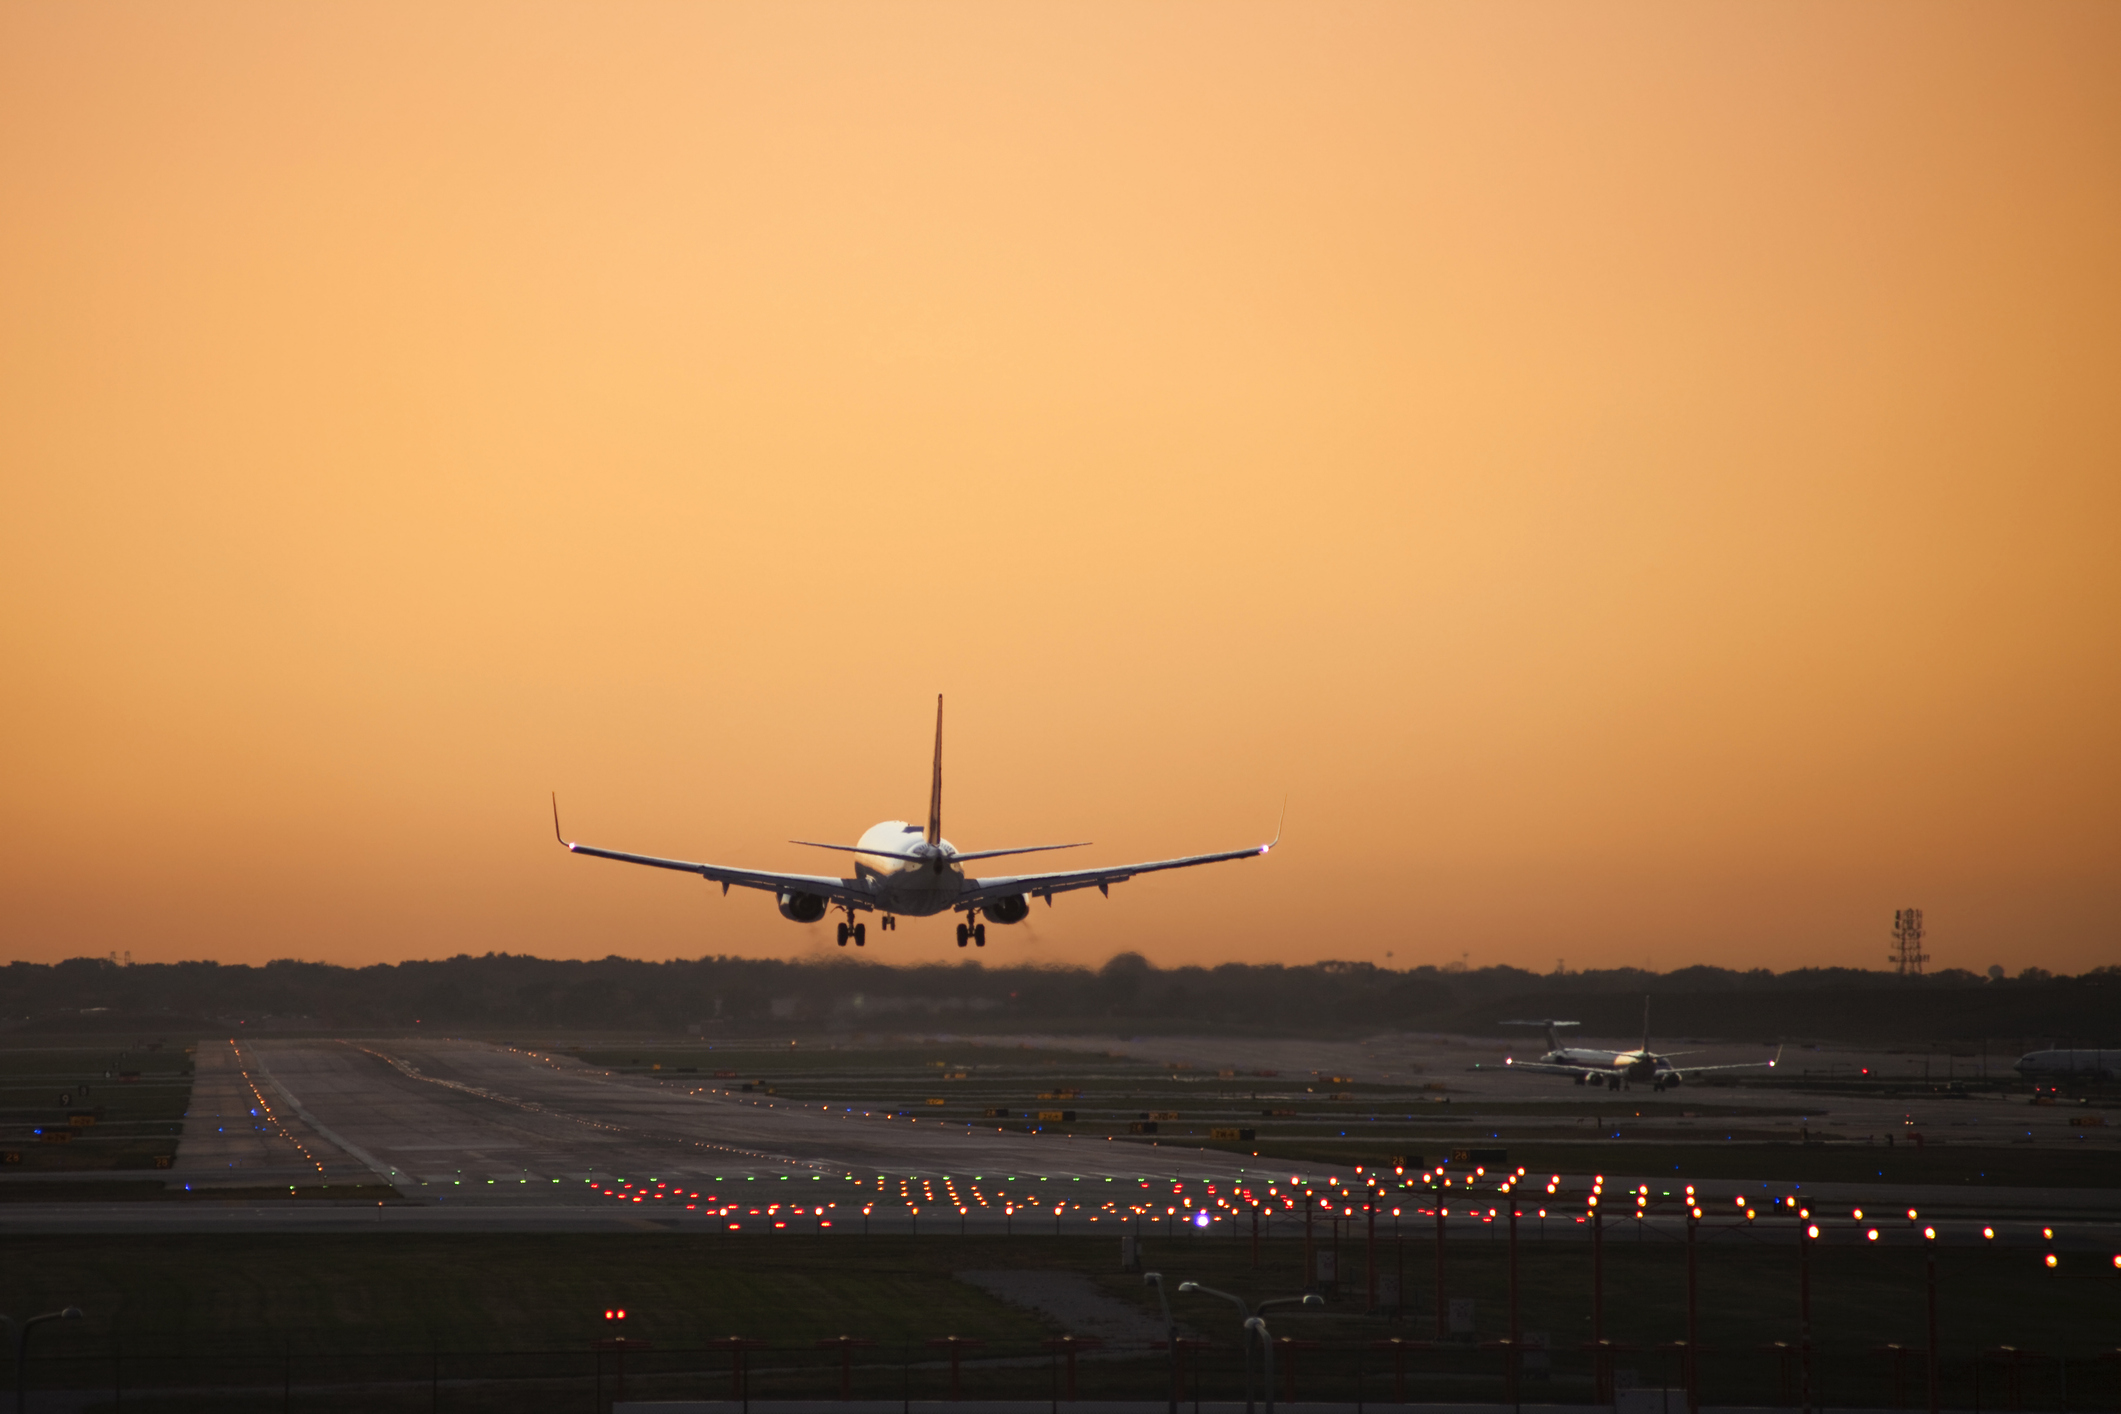 Commercial airplane coming in for a landing